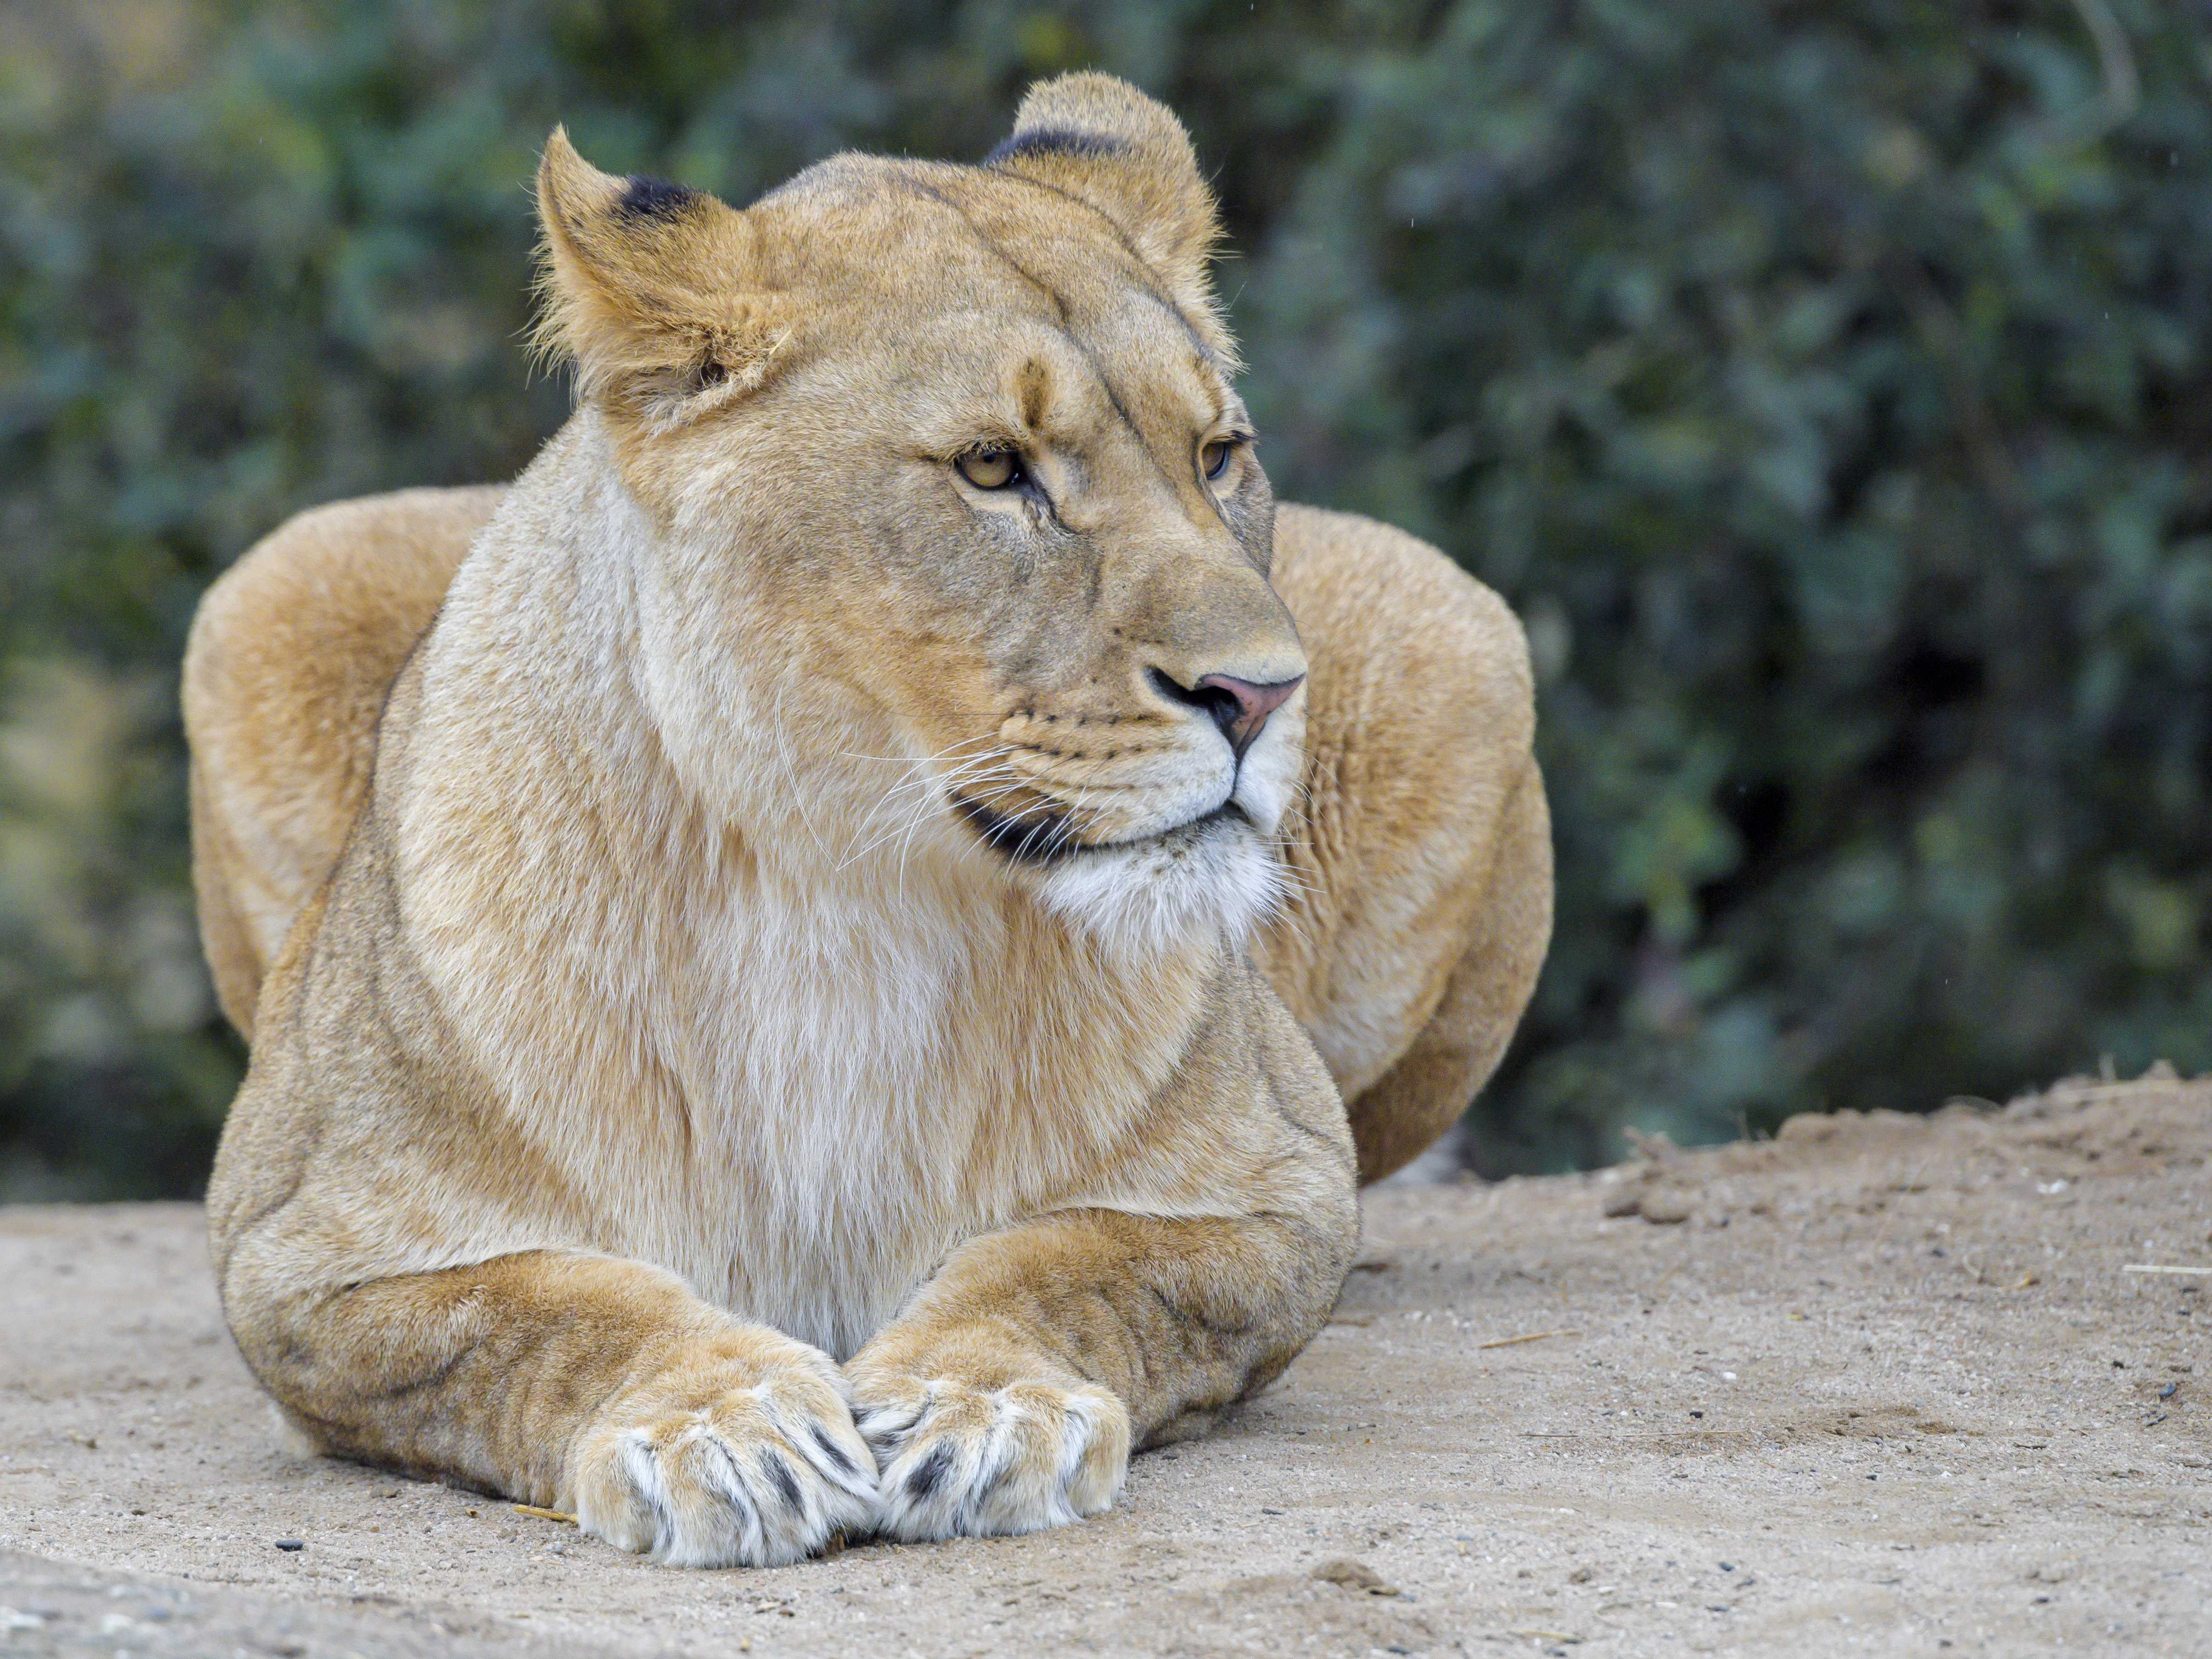 140055 download wallpaper Animals, Lioness, Predator, Big Cat, Wildlife screensavers and pictures for free